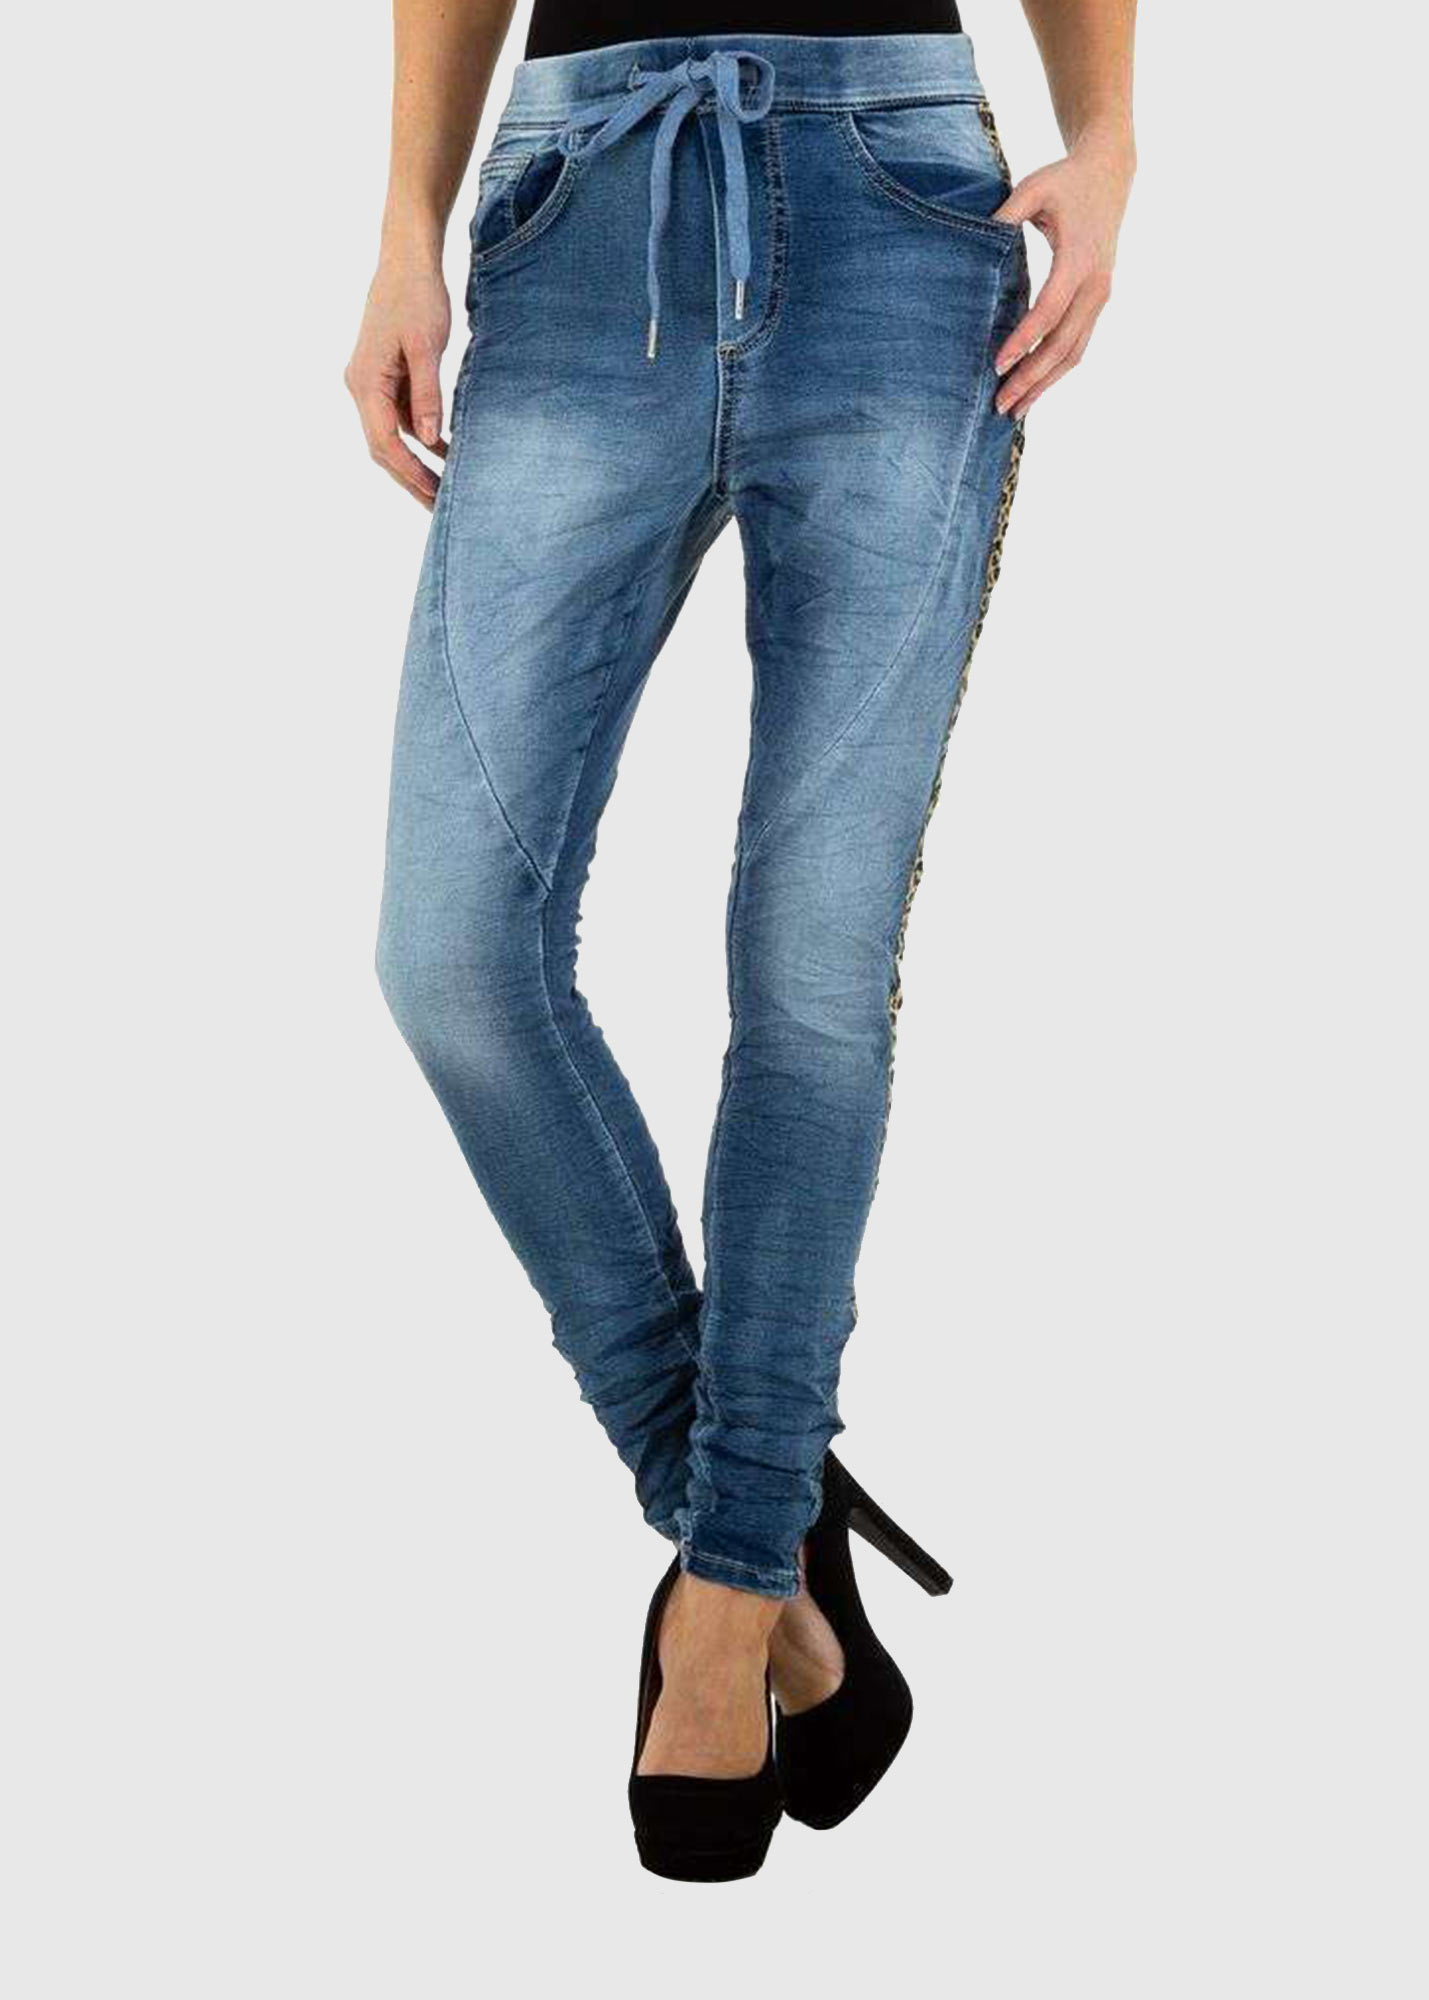 Photo №2 Laguna Slim Fit jeans with stripes